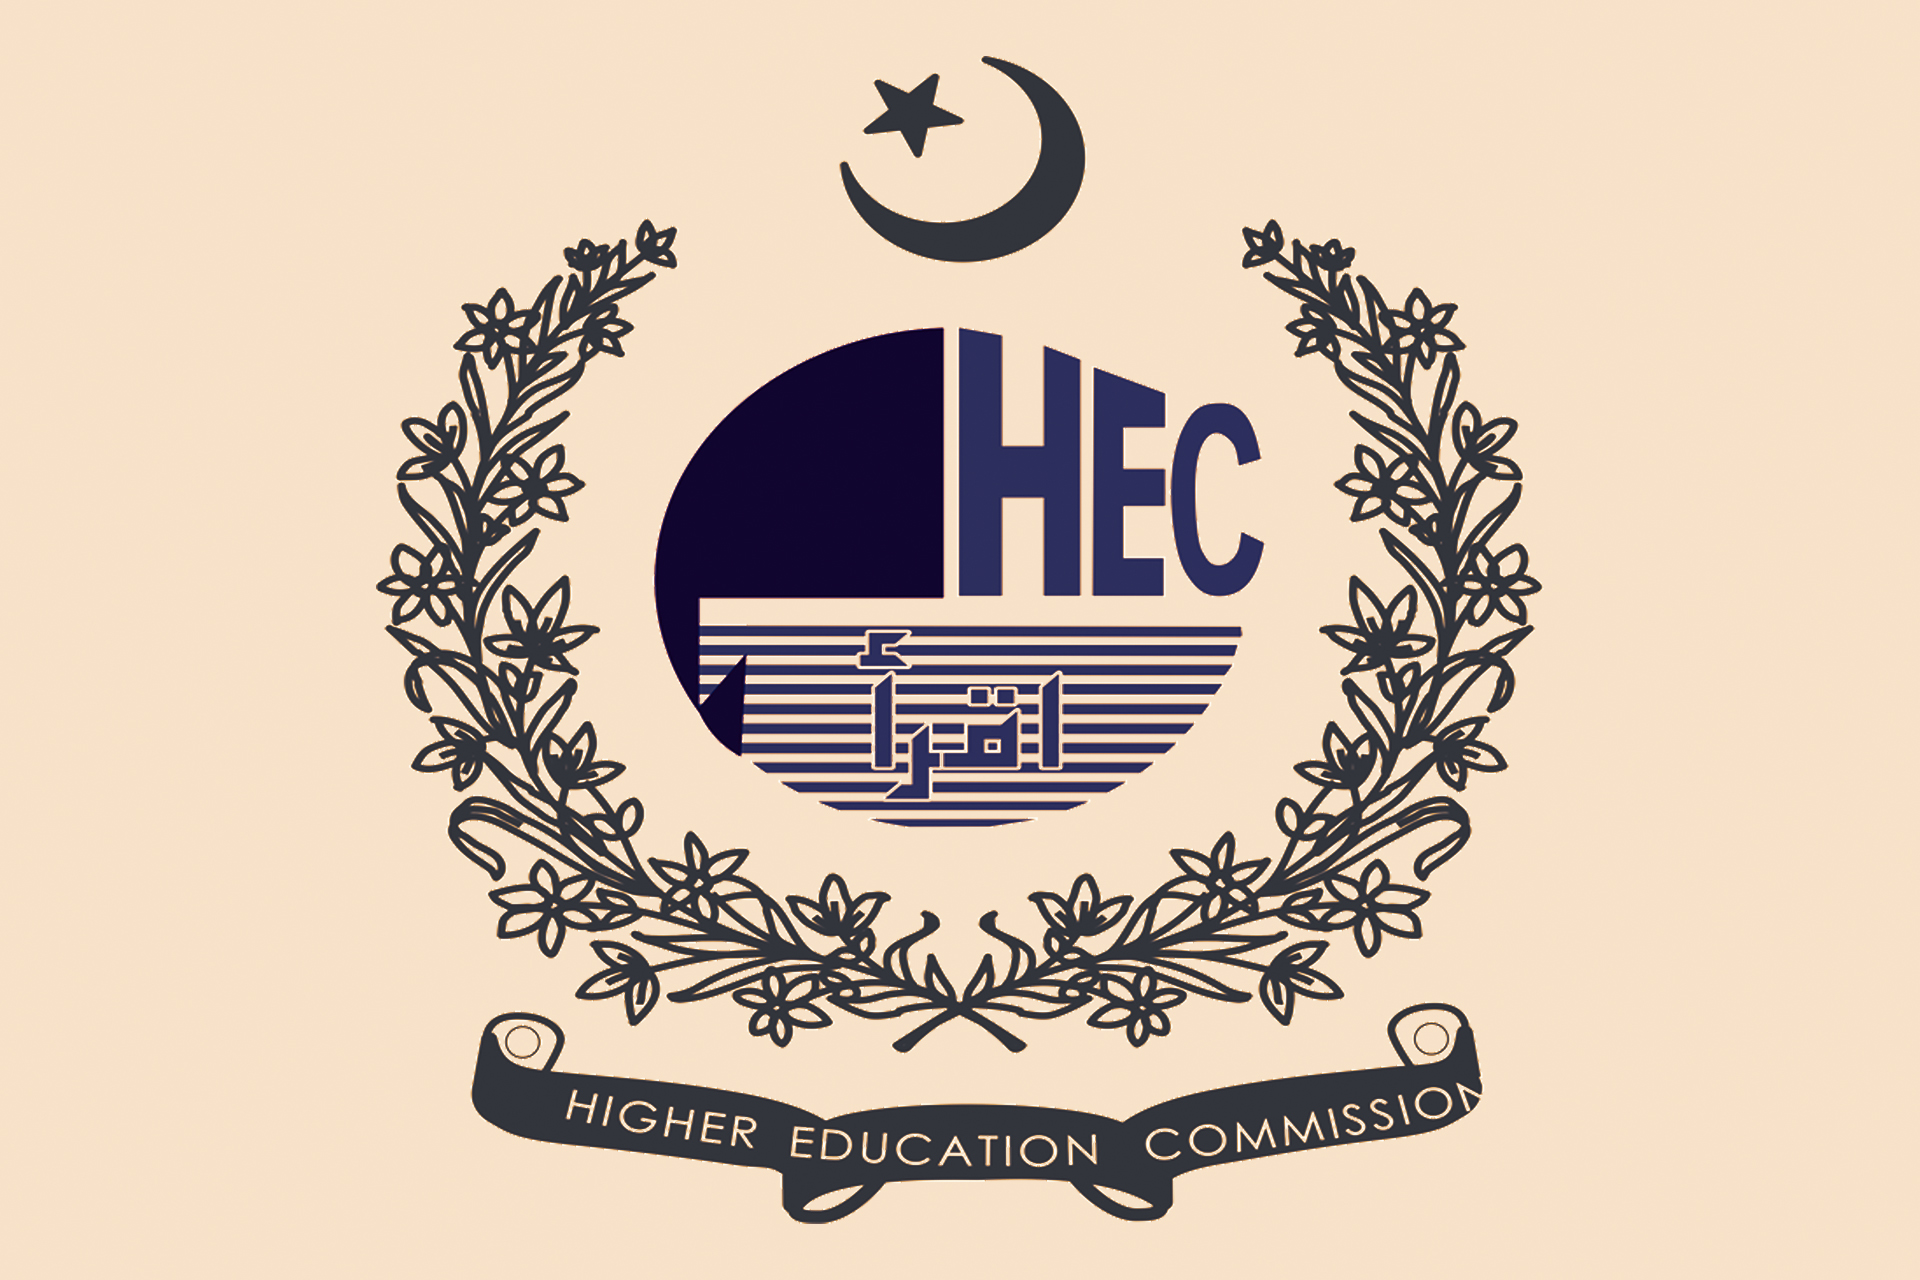 HEC LOGO: HEC is not being dissolved by CCI